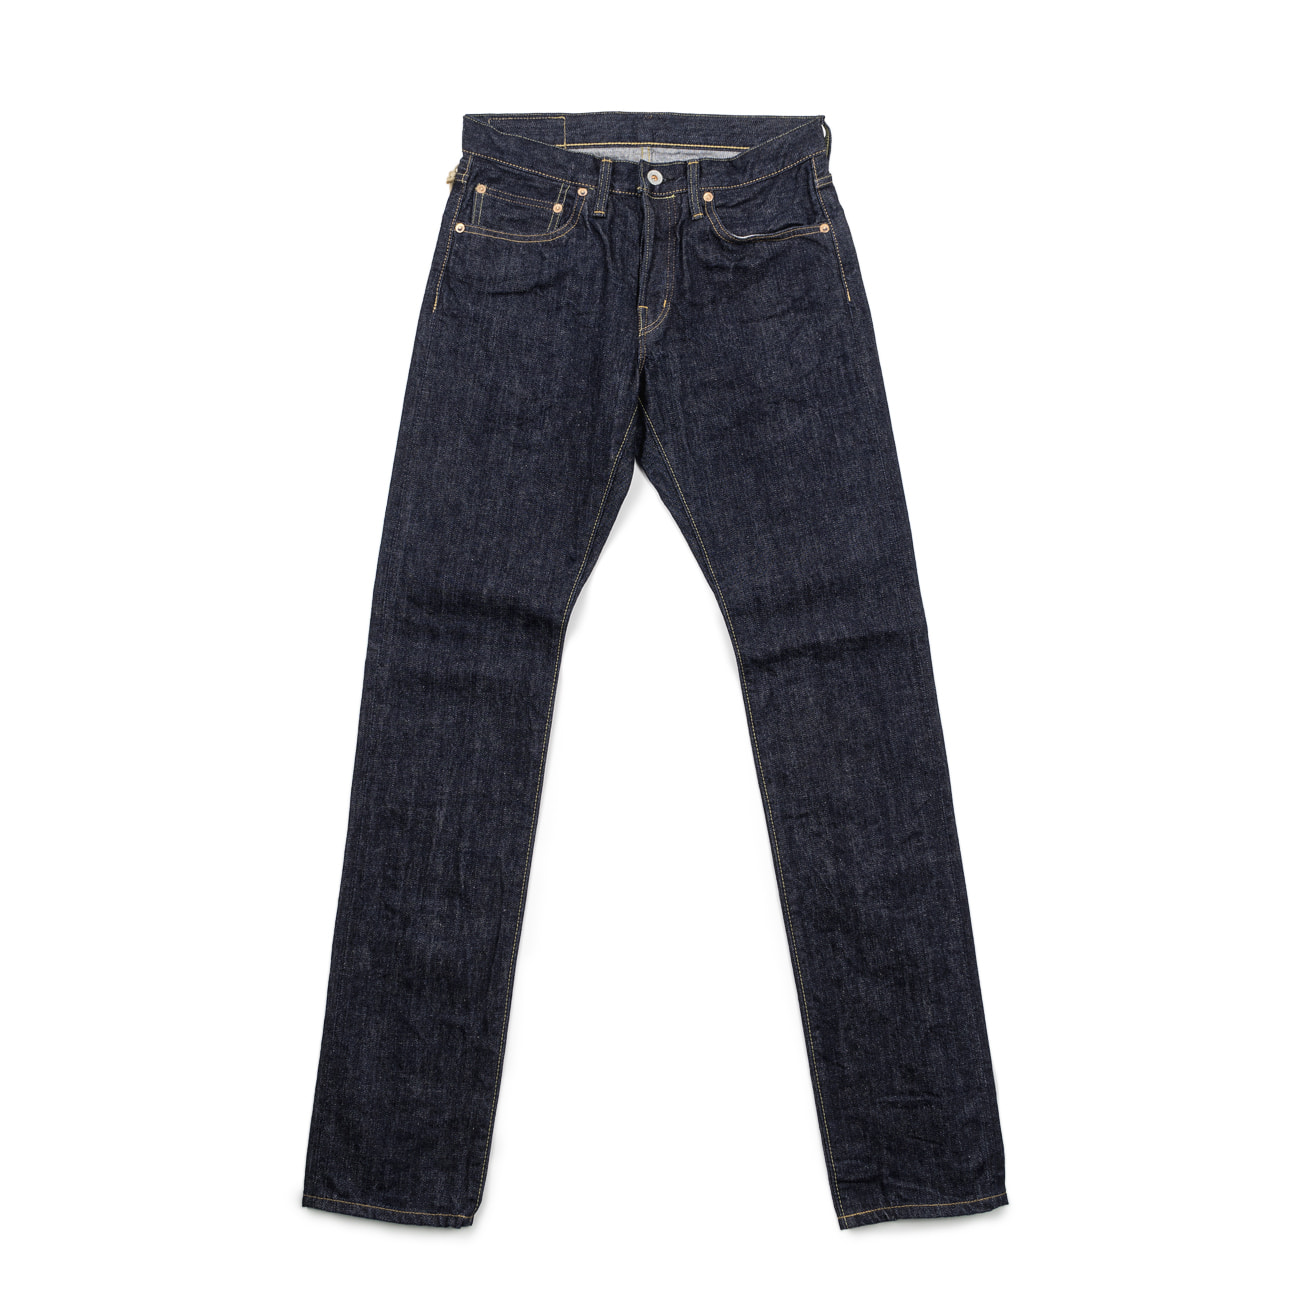 5P Authentic Selvedge Narrow Cut